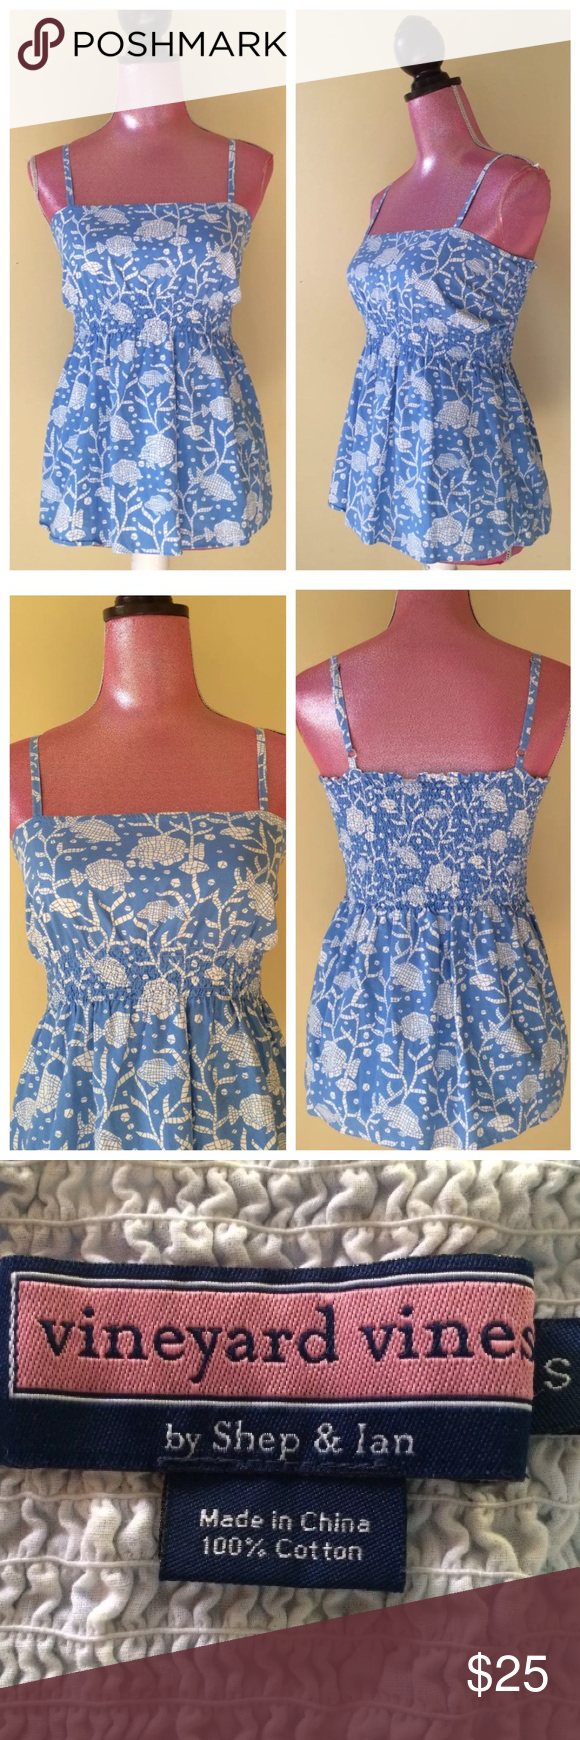 "Vineyard Vines Mosaic Fish Top Size small - approx. measurements laying flat - 14"" W across chest (stretches to 16"") - 23"" L shoulder to hemline 100% cotton - medium blue with Mosaic fish and seaweed print  Adjustable spaghetti straps - stretch smocking across upper back and around waist Excellent pre-owned condition with no stains, tears or odors Vineyard Vines Tops"